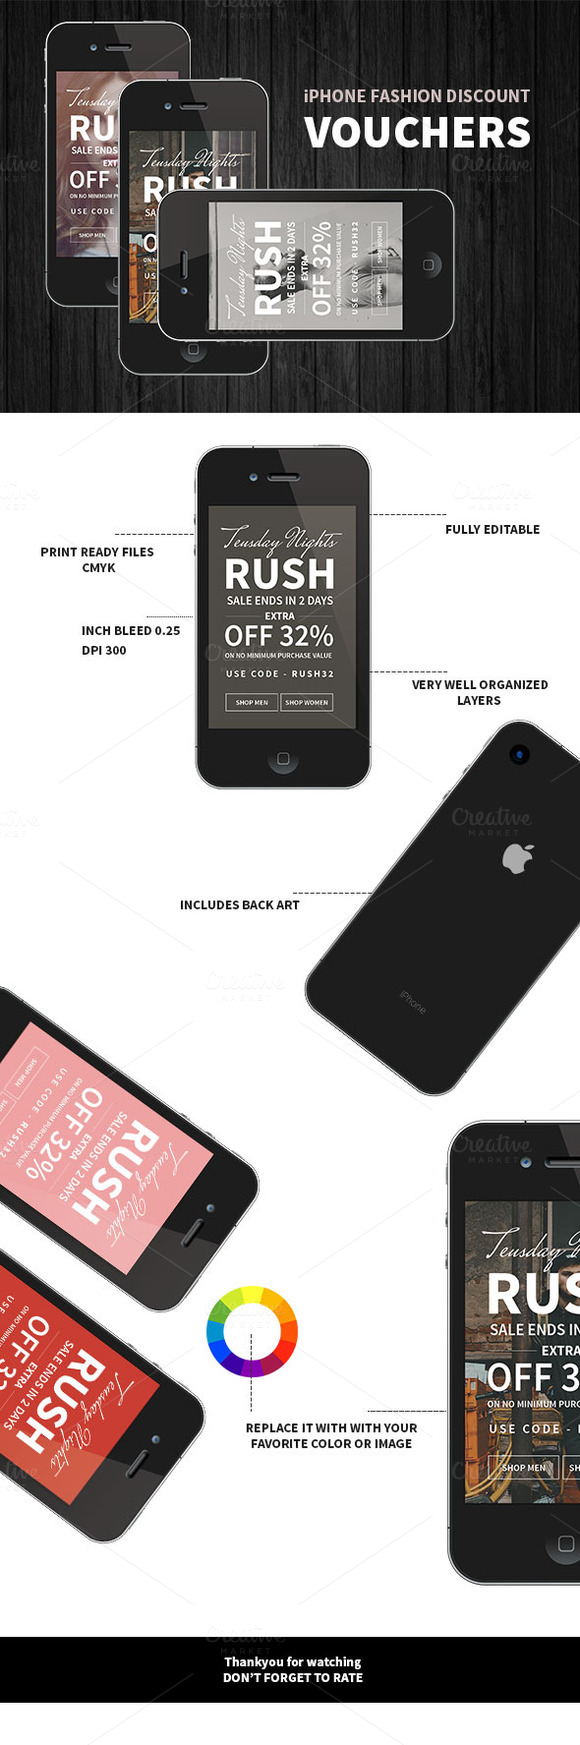 IPhone Fashion Discount Voucher